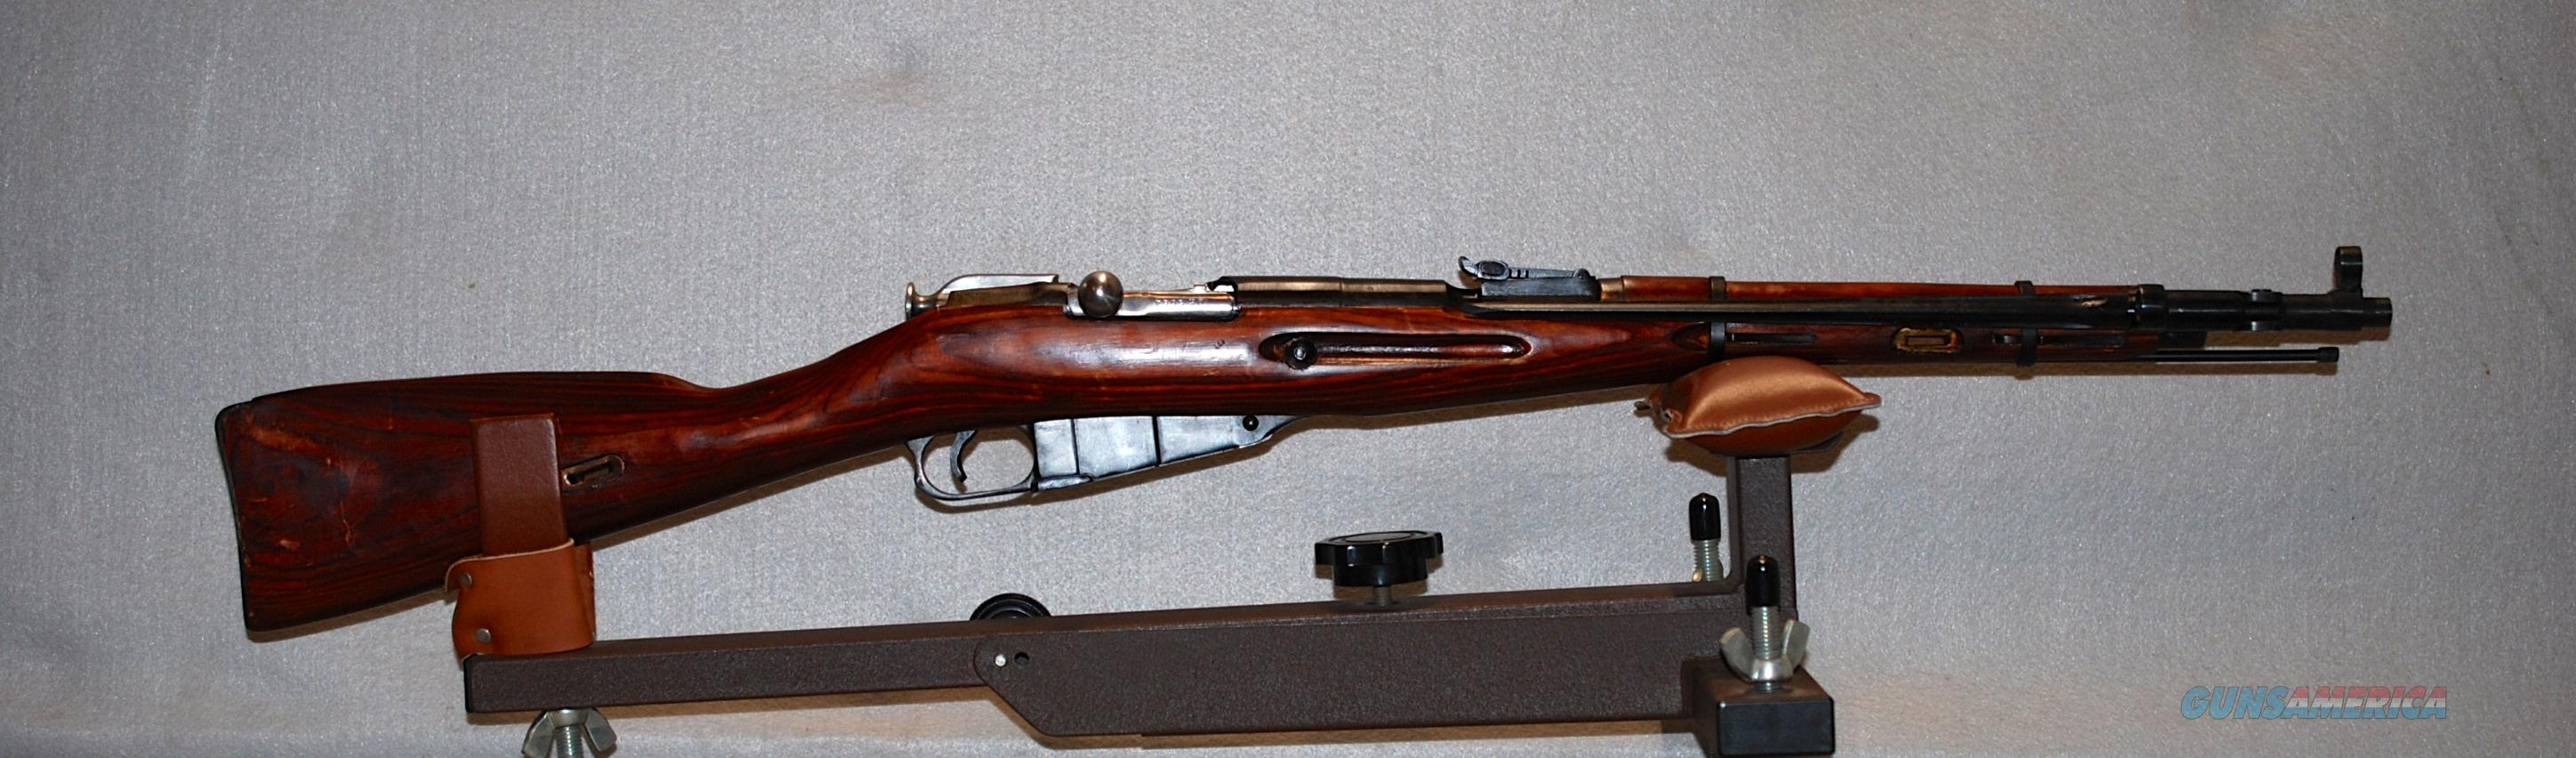 Mosin Nagant M44 Laminated stock  Guns > Rifles > Mosin-Nagant Rifles/Carbines